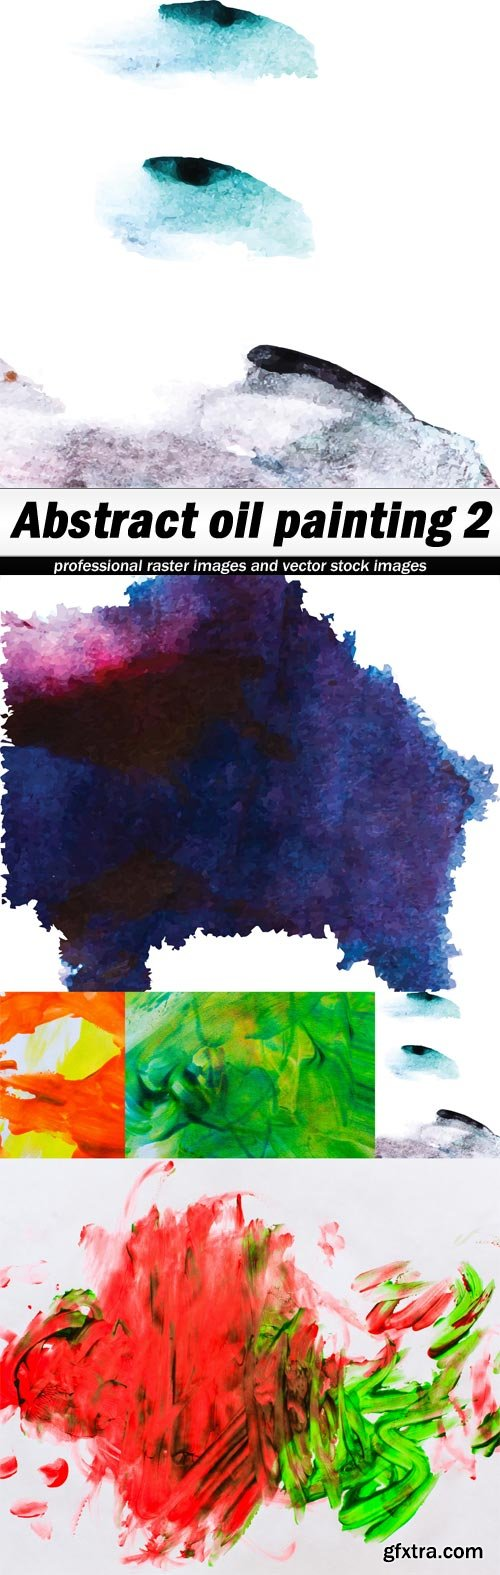 Abstract oil painting 2 - 5 UHQ JPEG